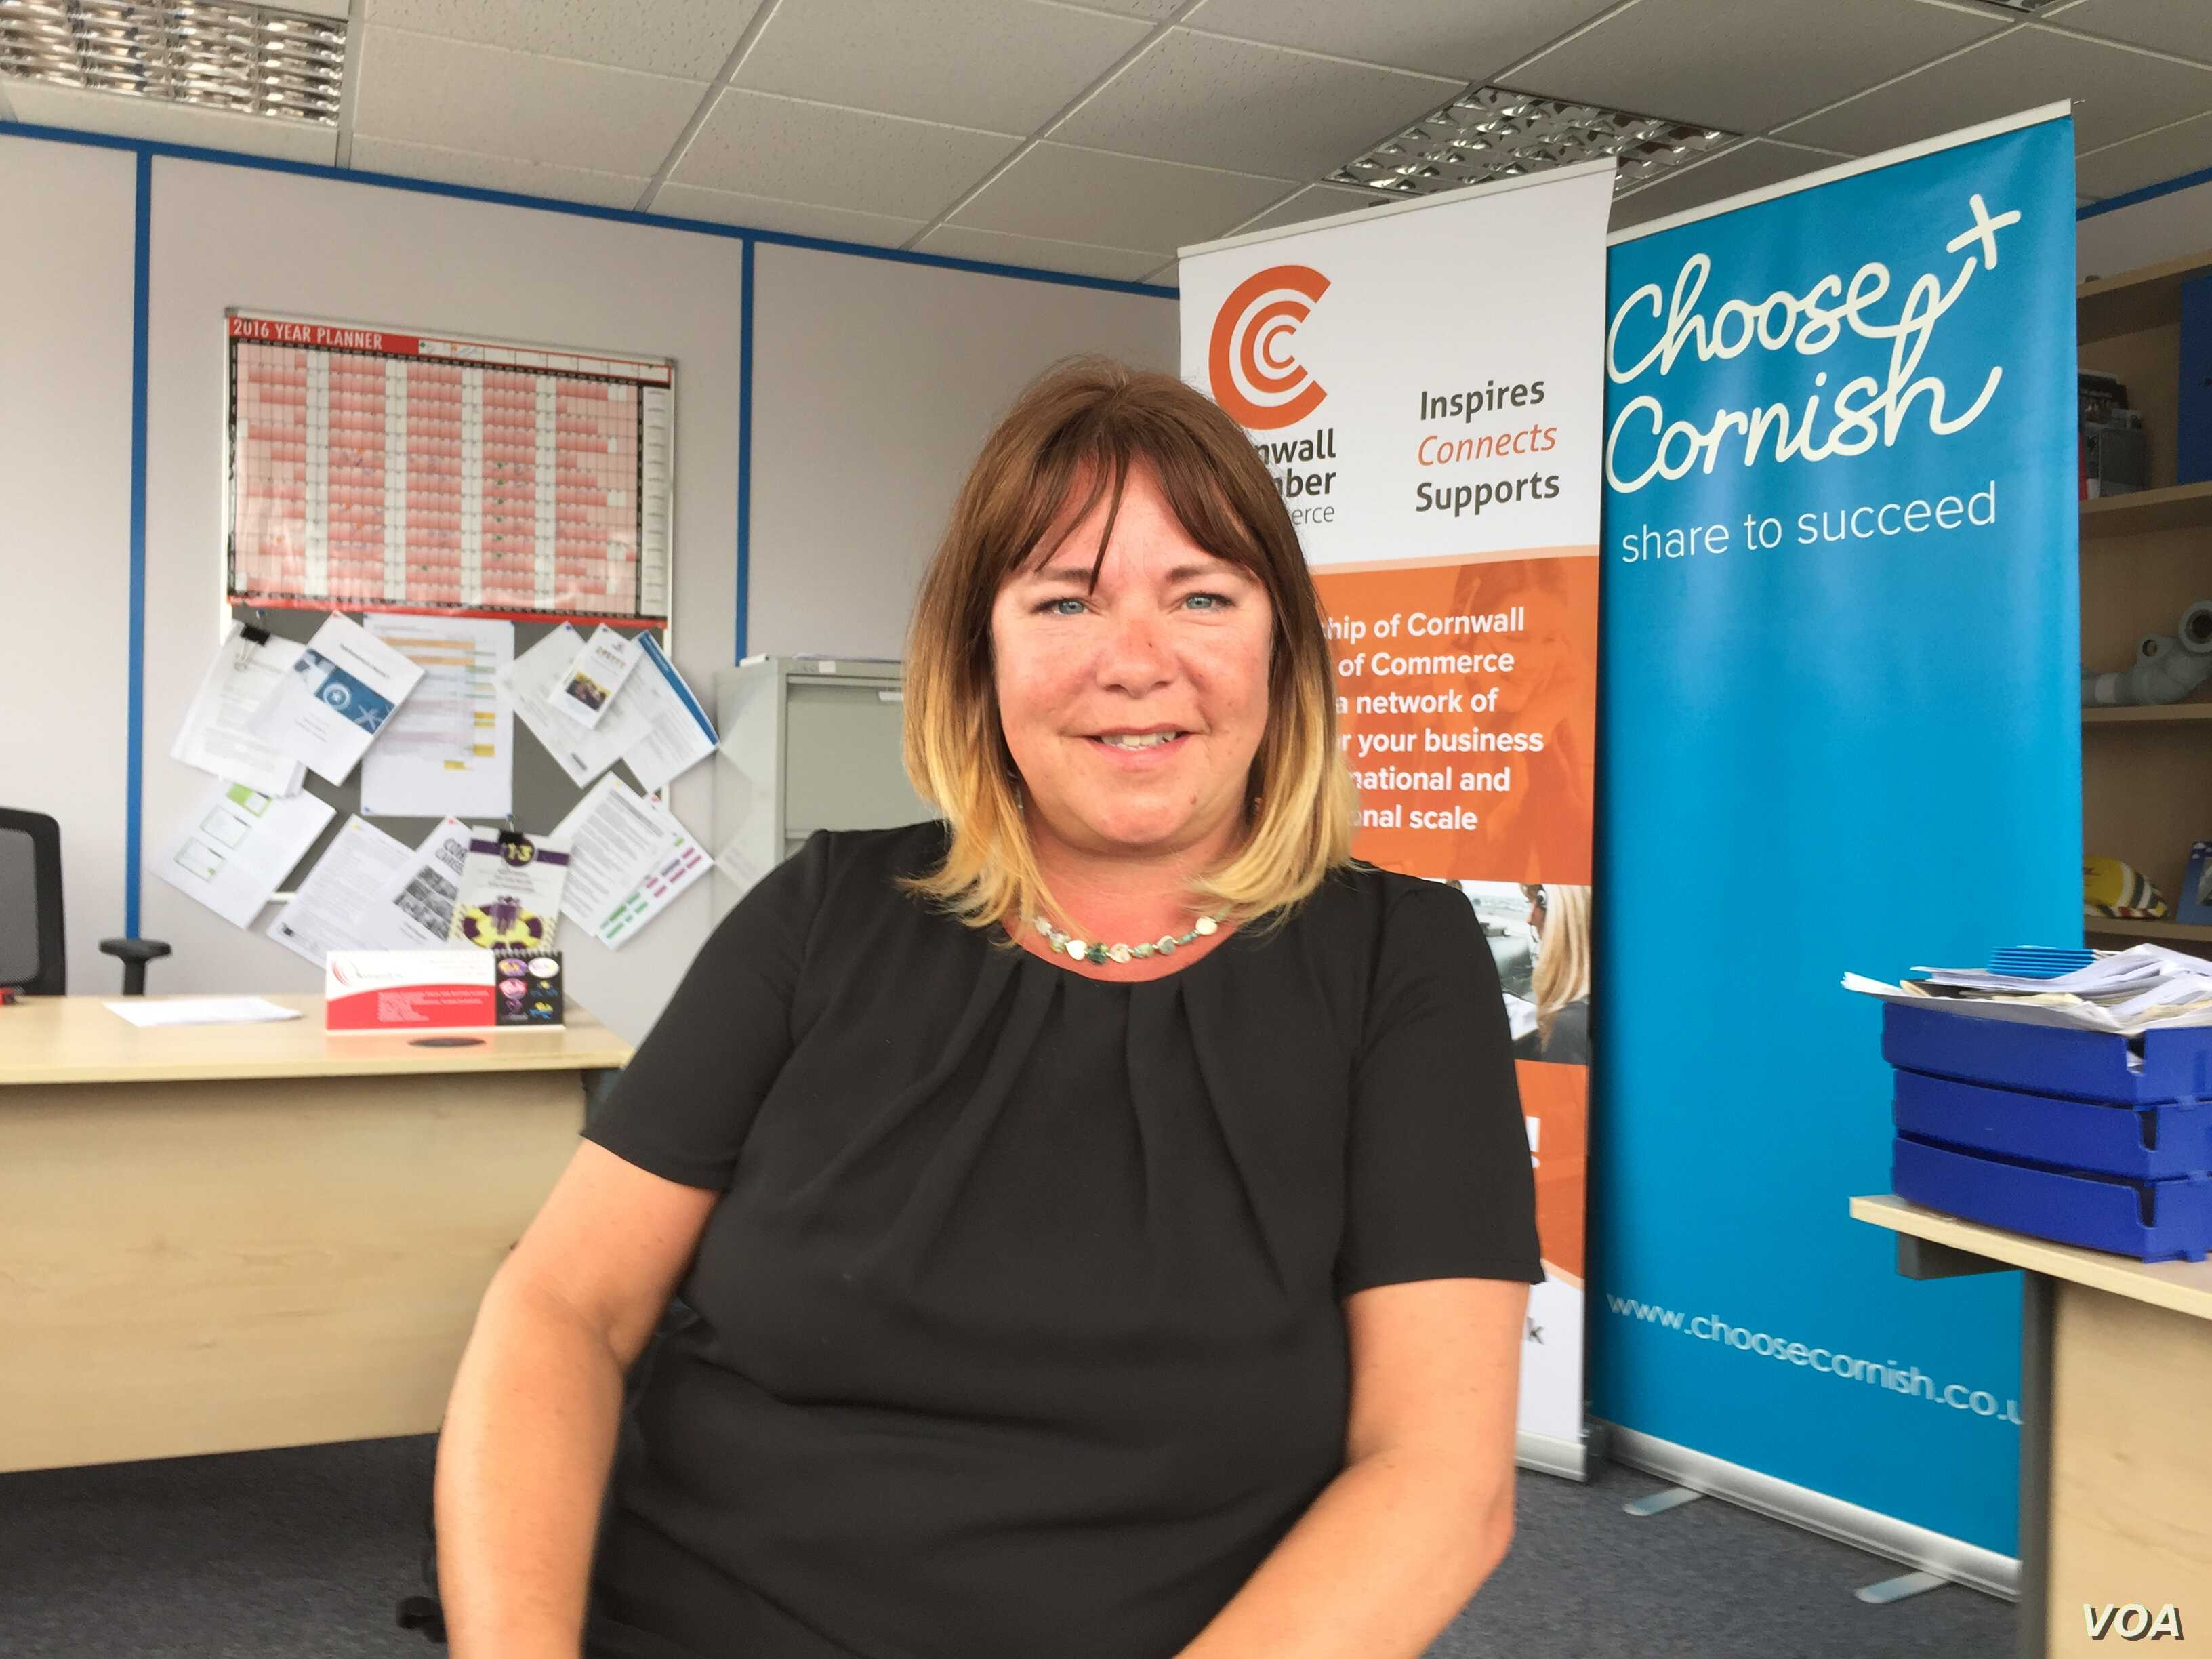 Mel Colton-Dyer of Cornwall's Chamber of Commerce says EU assistance has transformed the region. (L. Ramirez/VOA)